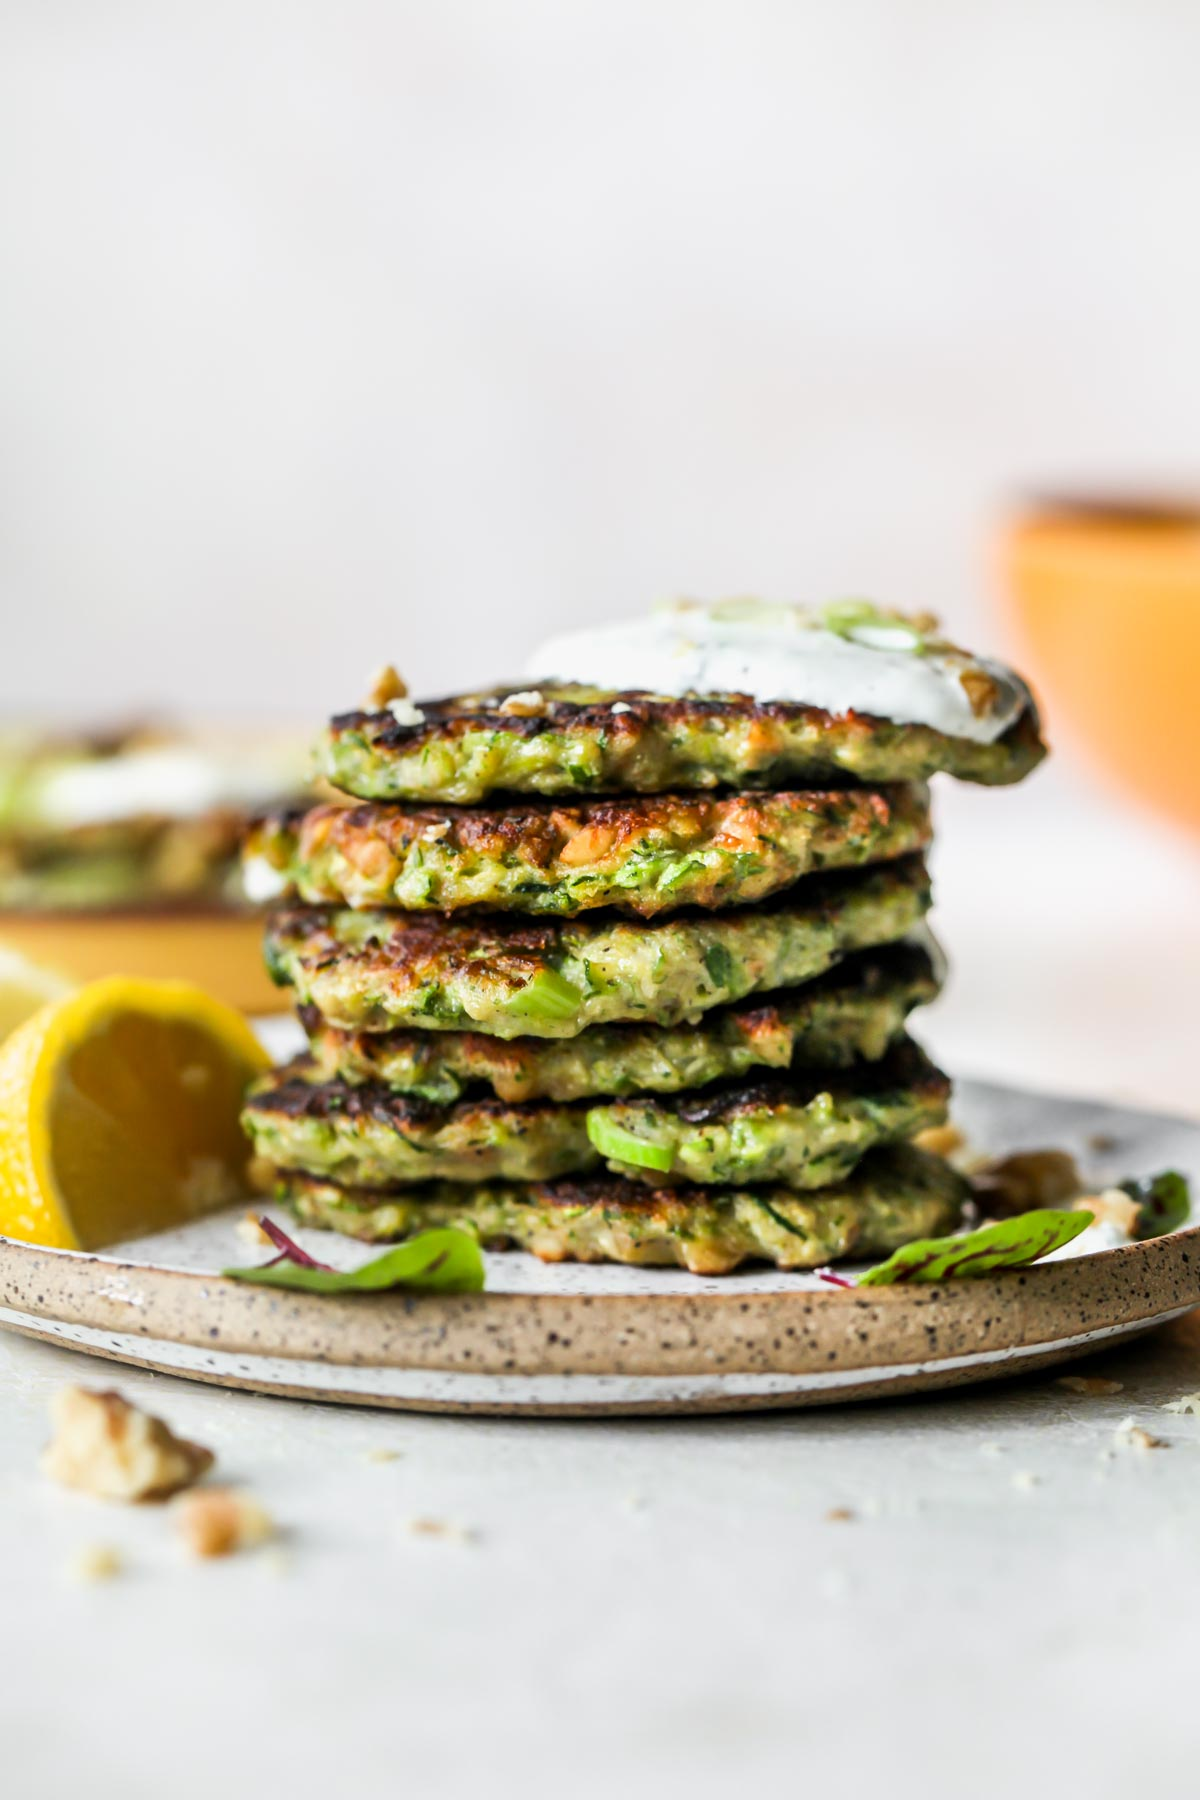 A stack of zucchini fritters on a plate topped with garlic sauce